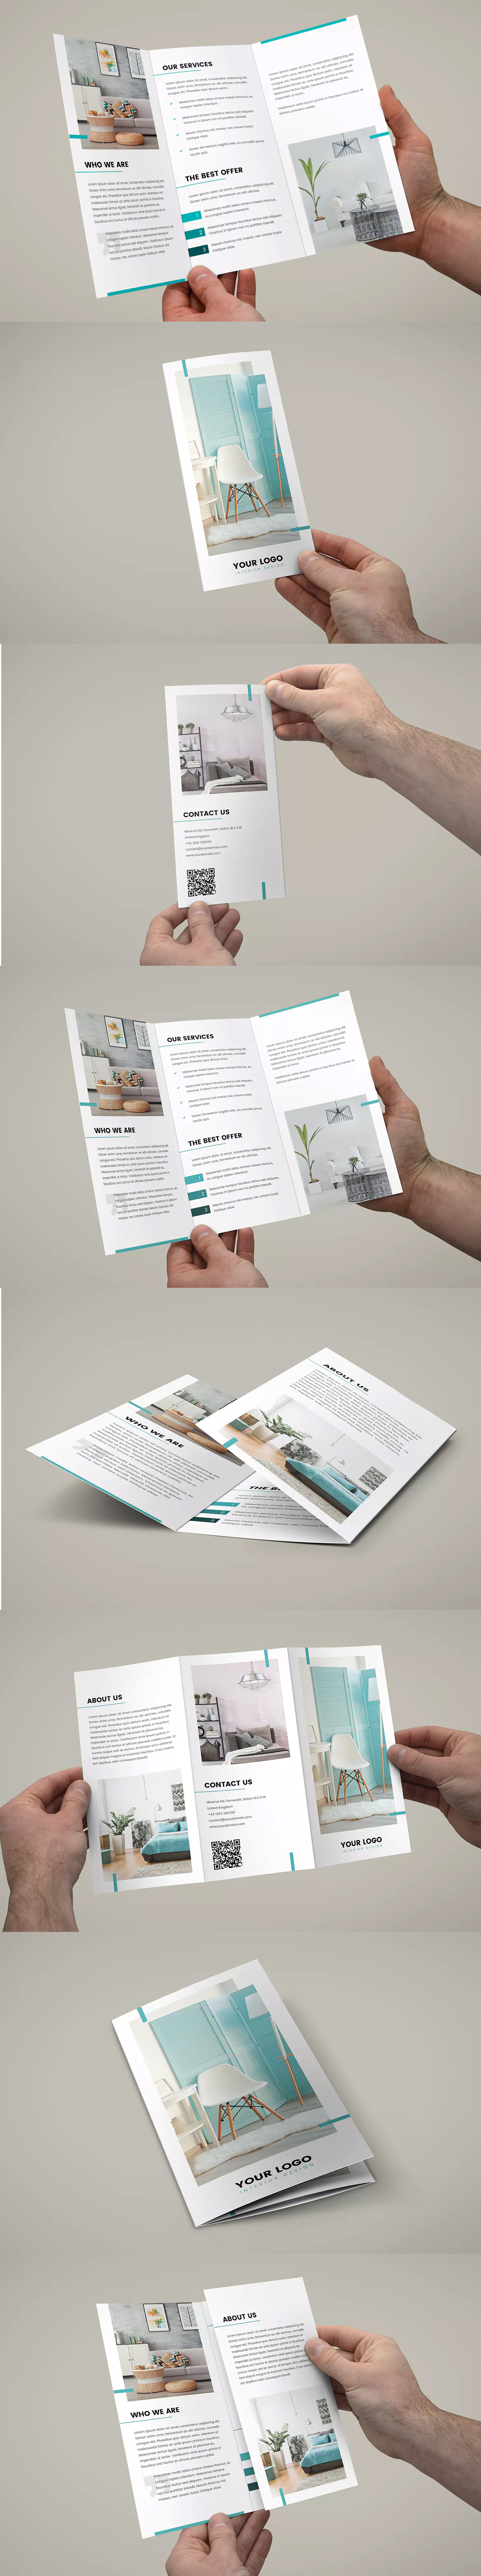 interior design tri fold brochure template psd a4 and us letter size